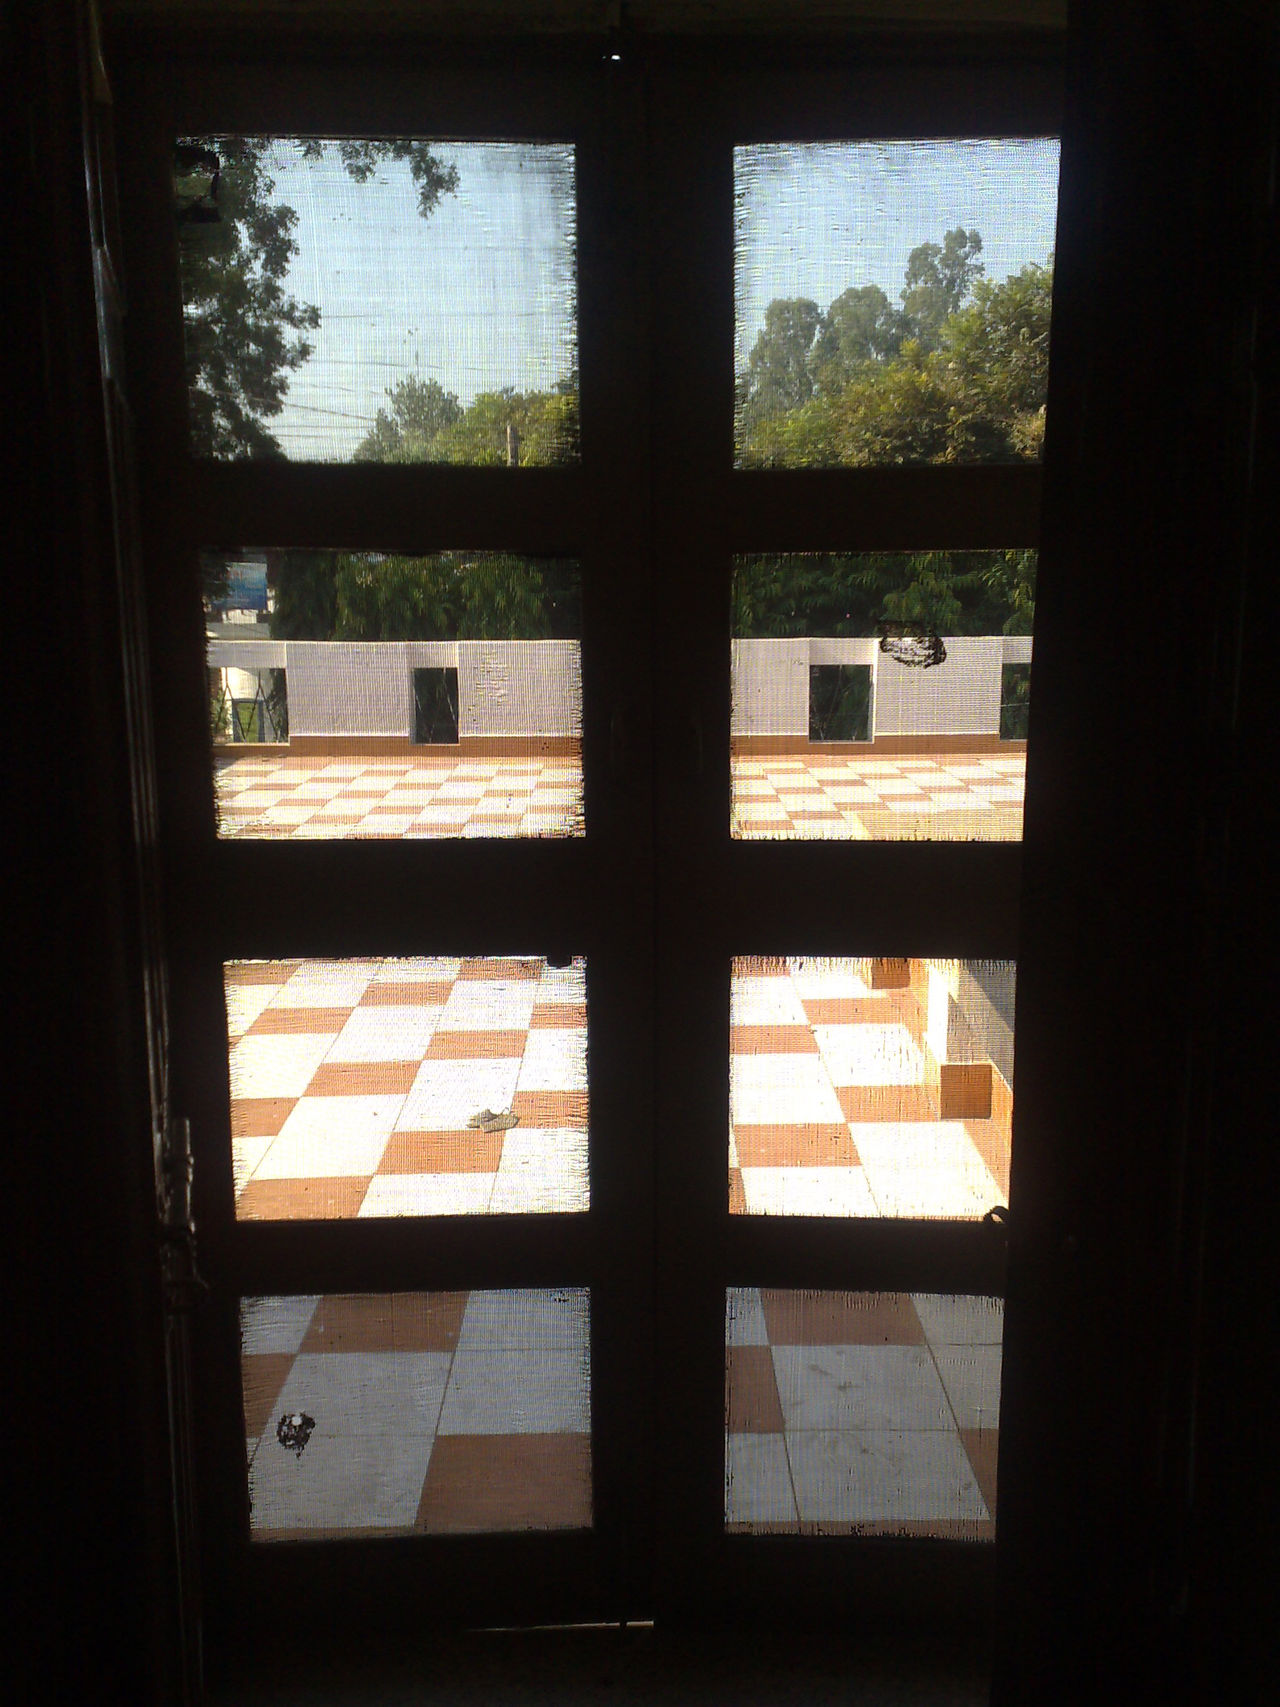 The open courtyard with the sun shining on the courtyard, as well as trees and blue sky visible through the wire mesh set on the frame of a door Door Door Panels Home Interior House Indoors  Mesh Door Panels No People Outside View Transparent Window Window Frame